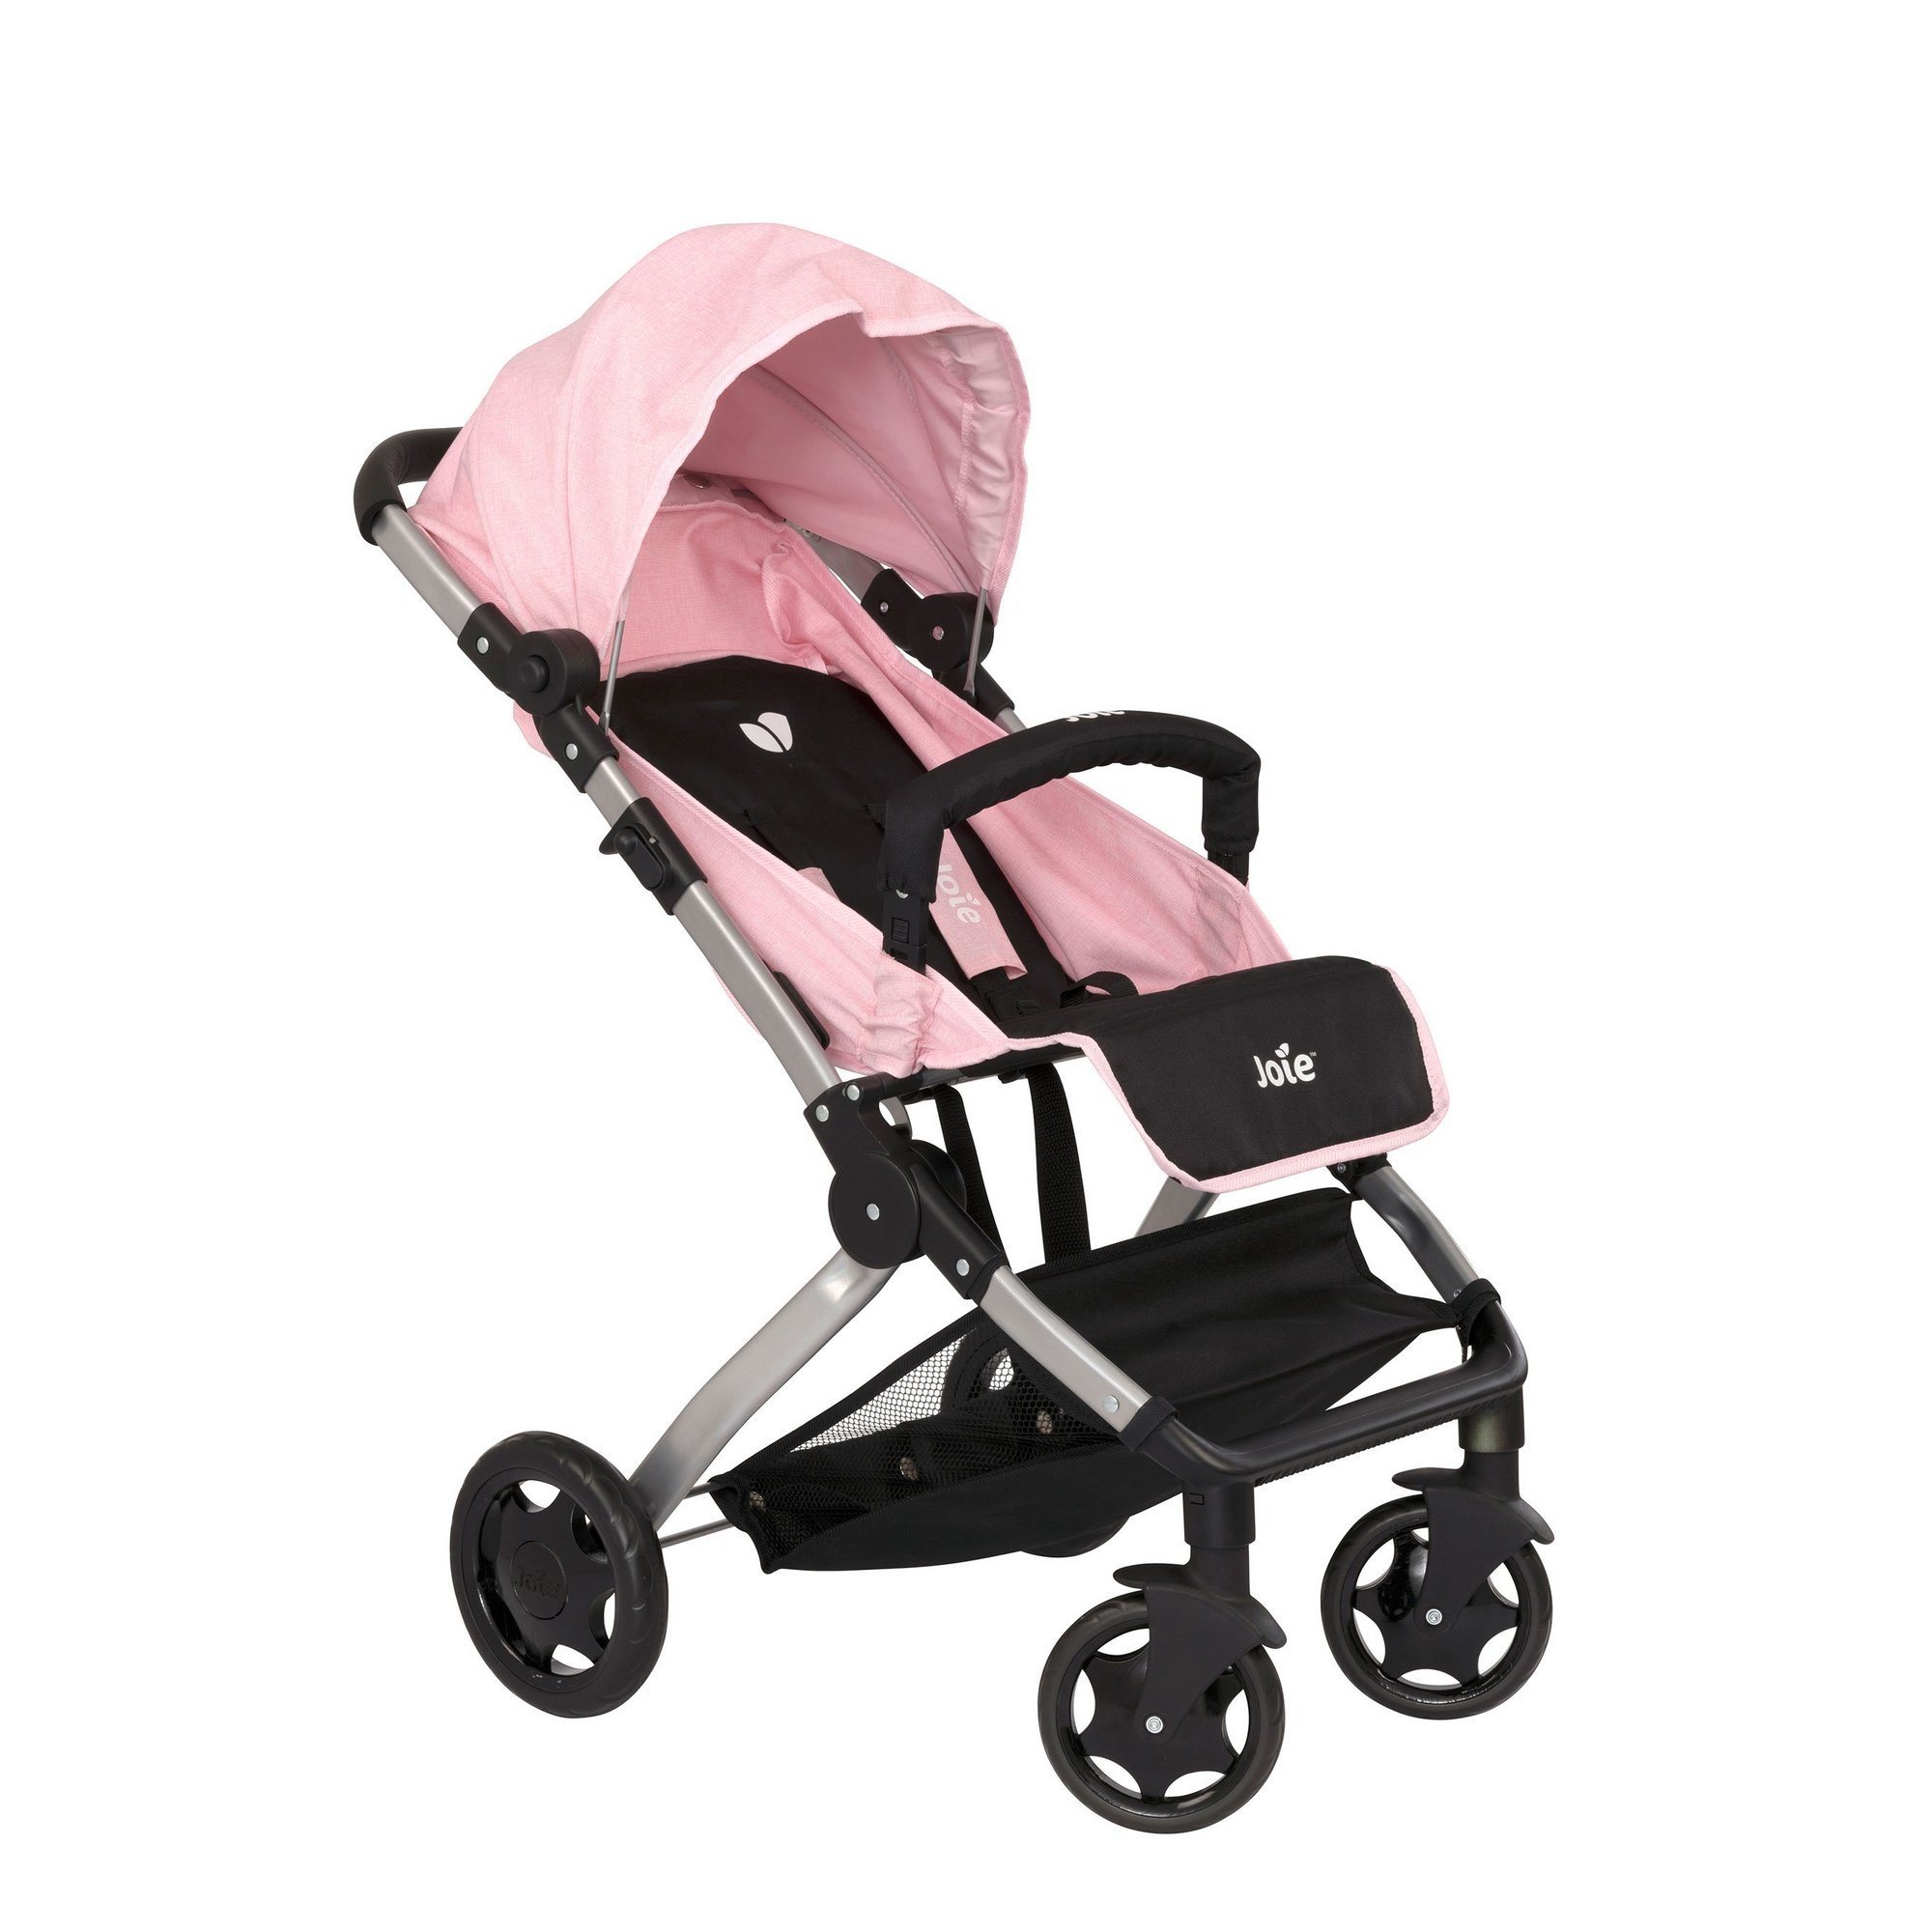 Image of Joie Junior Pact Pram